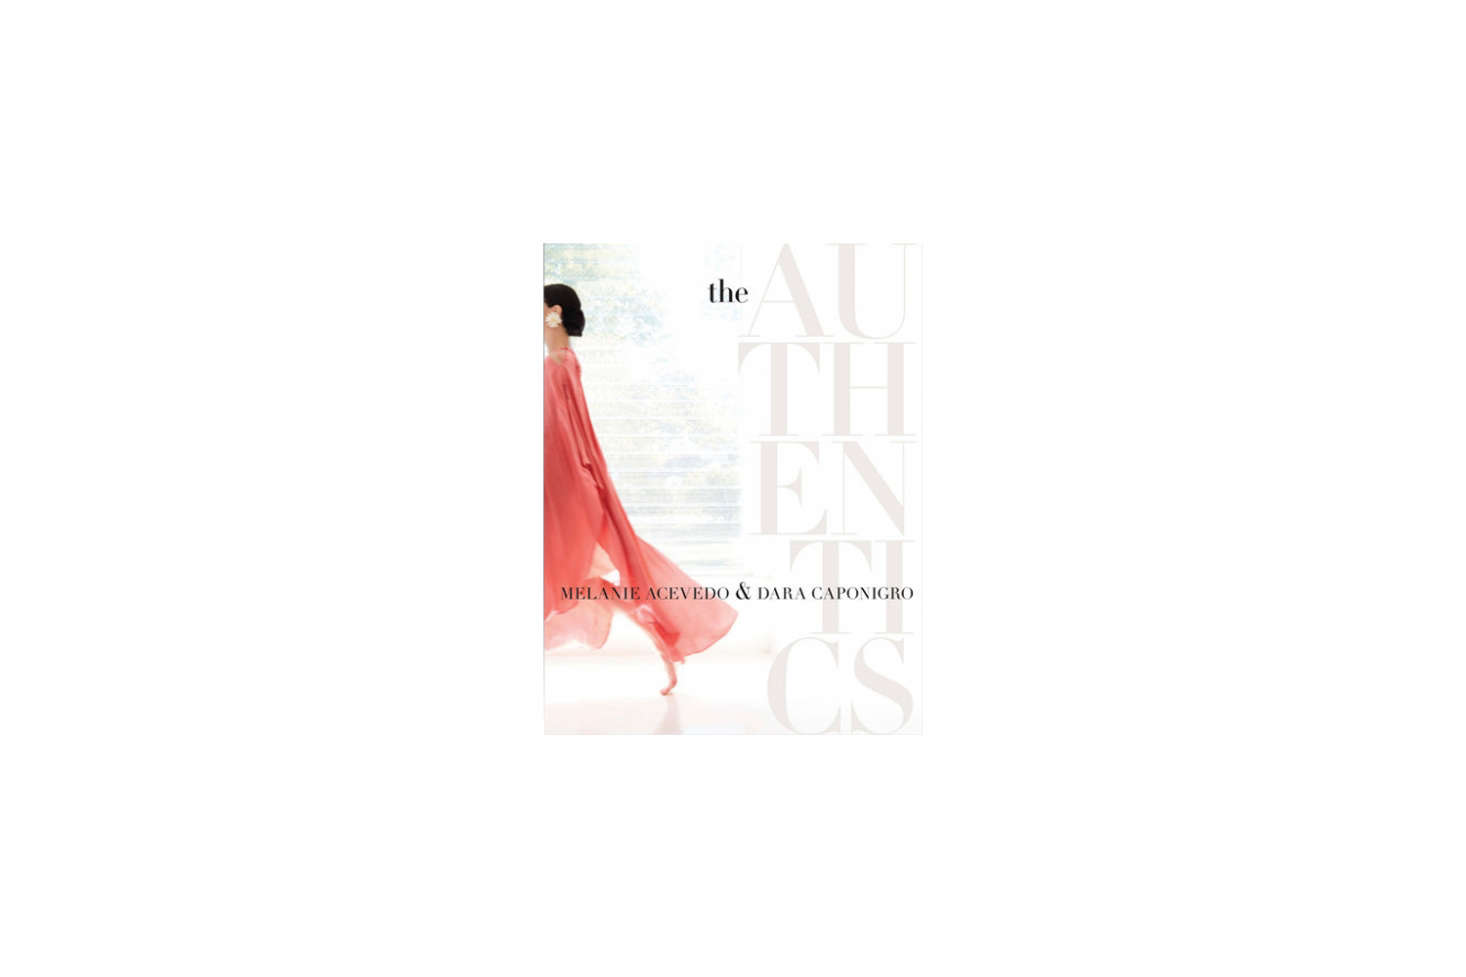 The Authentics: A Lush Dive into the Substance of Style by Melanie Acevedo and Domino alum Dara Caponigro is $4src=